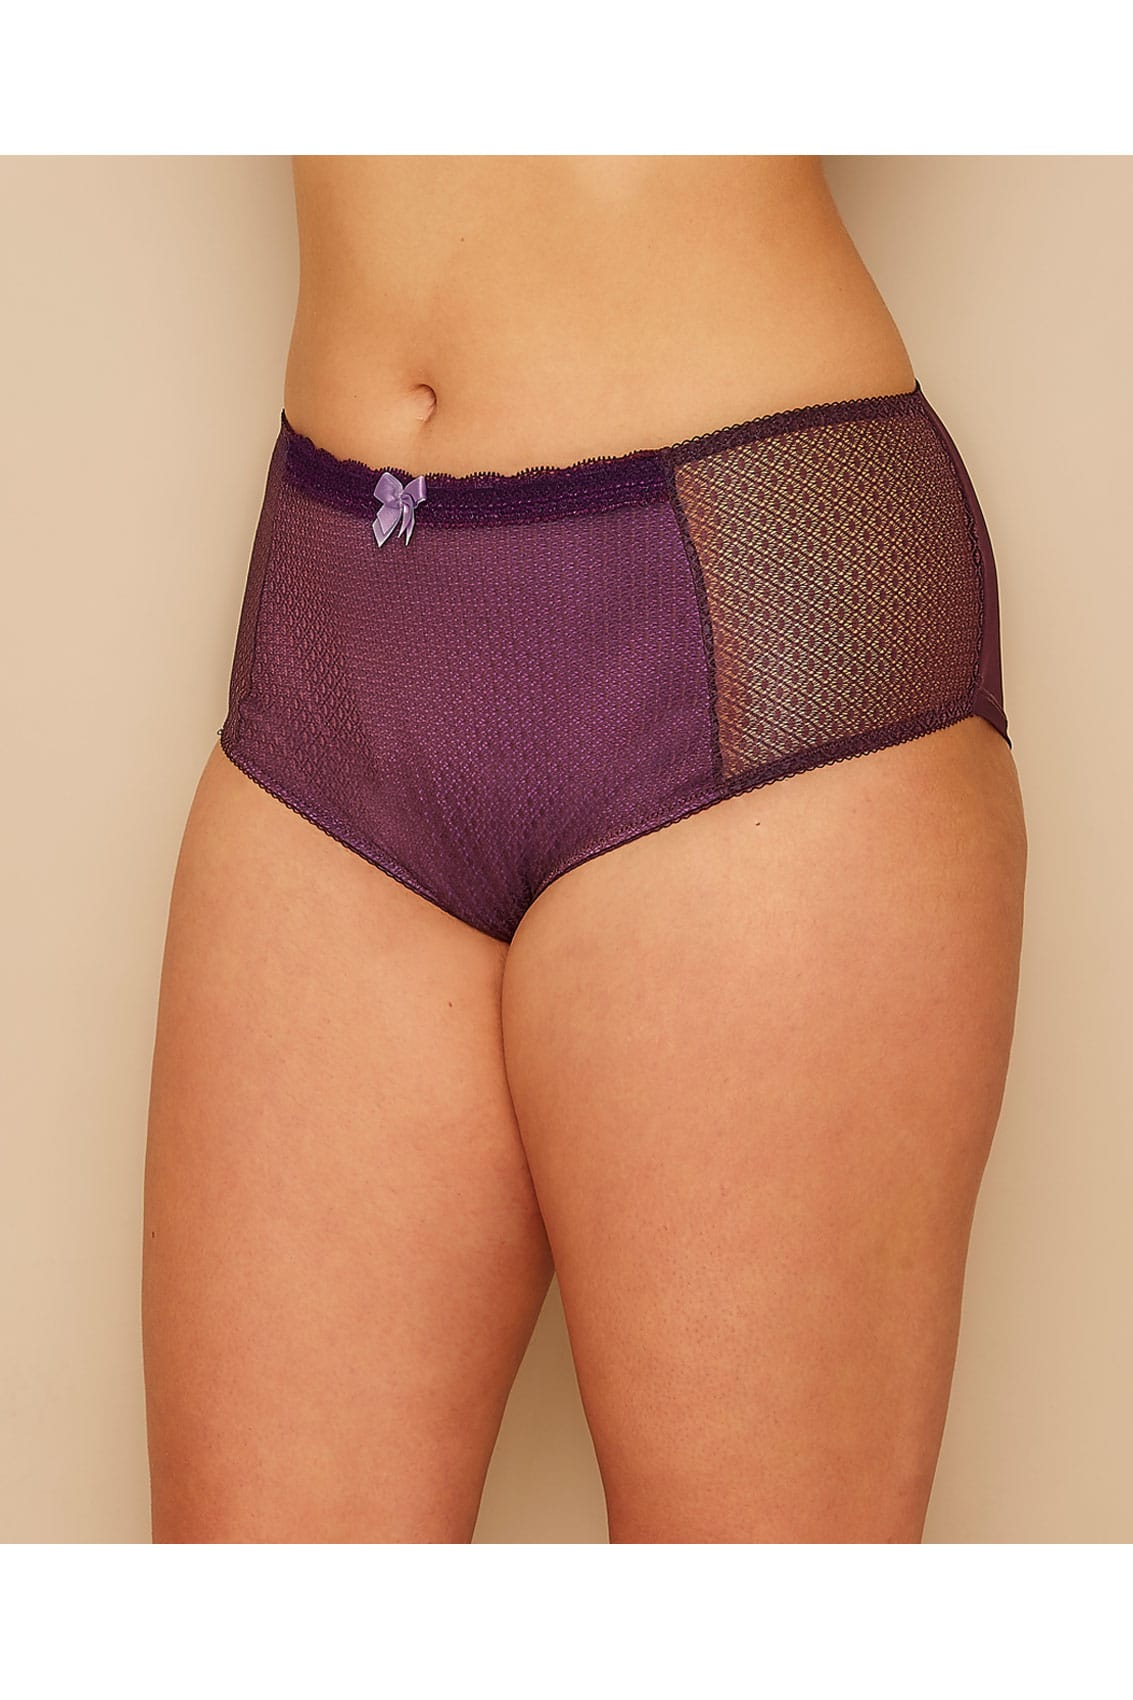 96 Best Images About Nail Polish On Pinterest: Purple Berry Mesh Brief, Plus Size 16 To 36